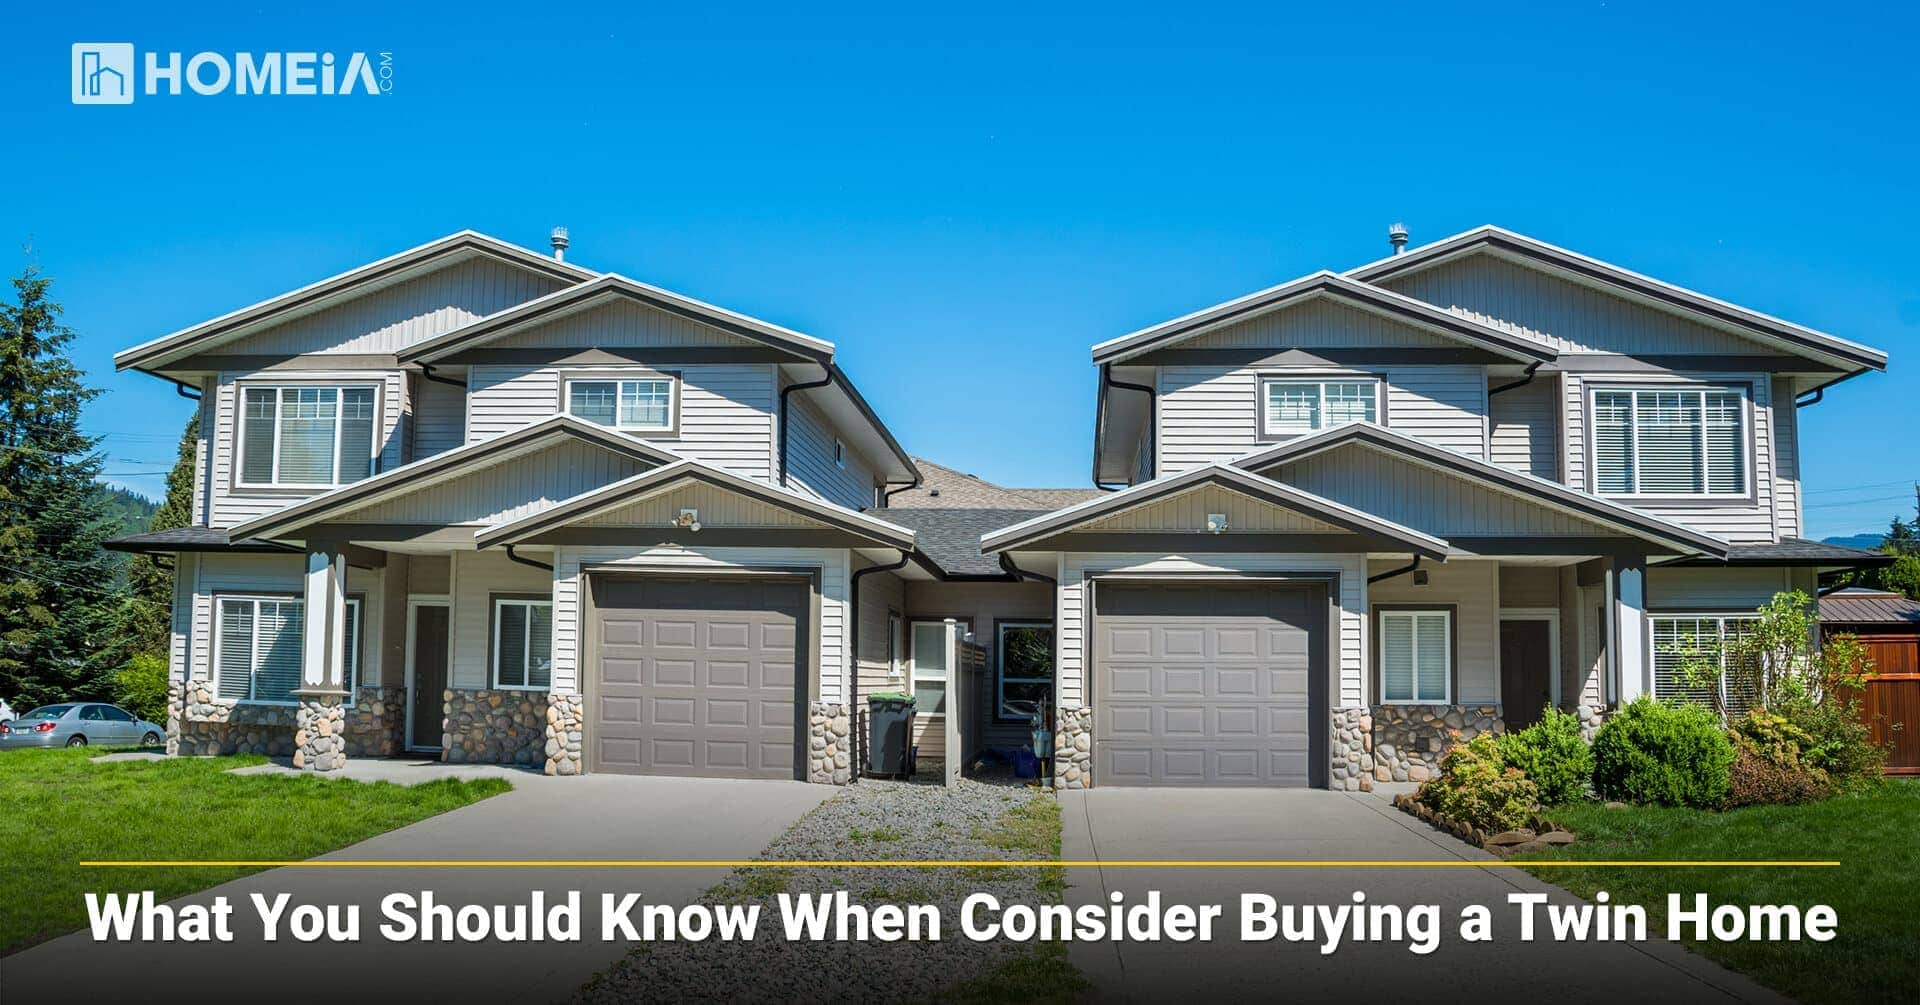 What You Should Know When Consider Buying a Twin Home